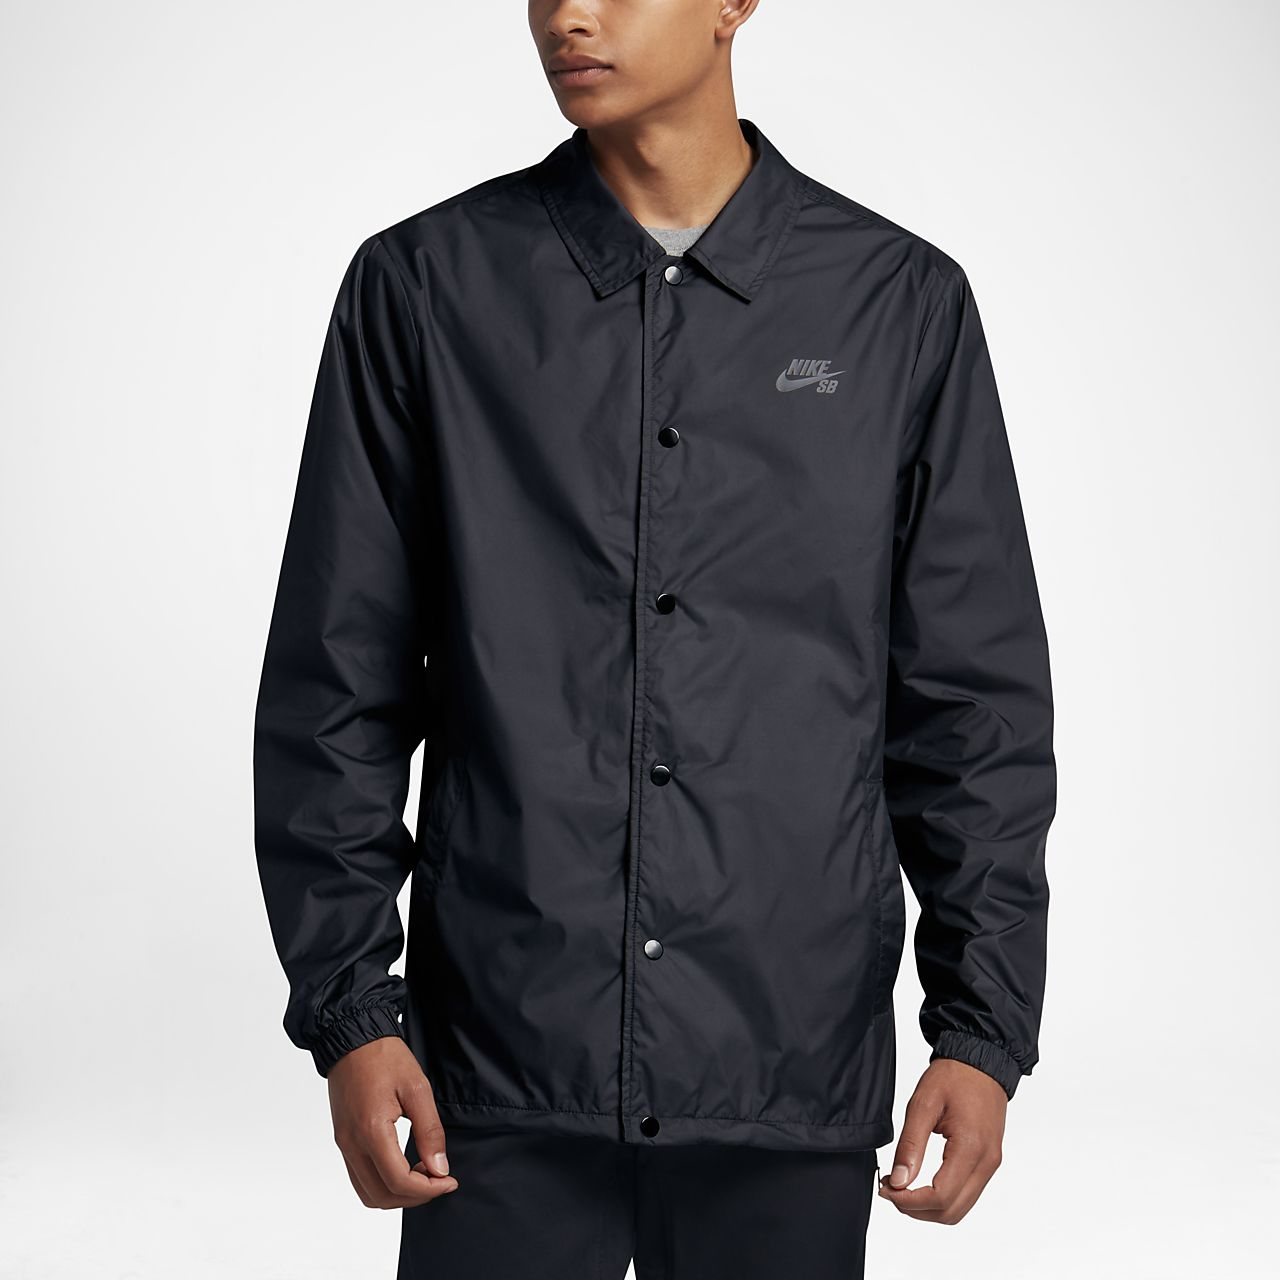 1c901ecbe353 Nike SB Shield Coaches Men s Jacket. Nike.com AU